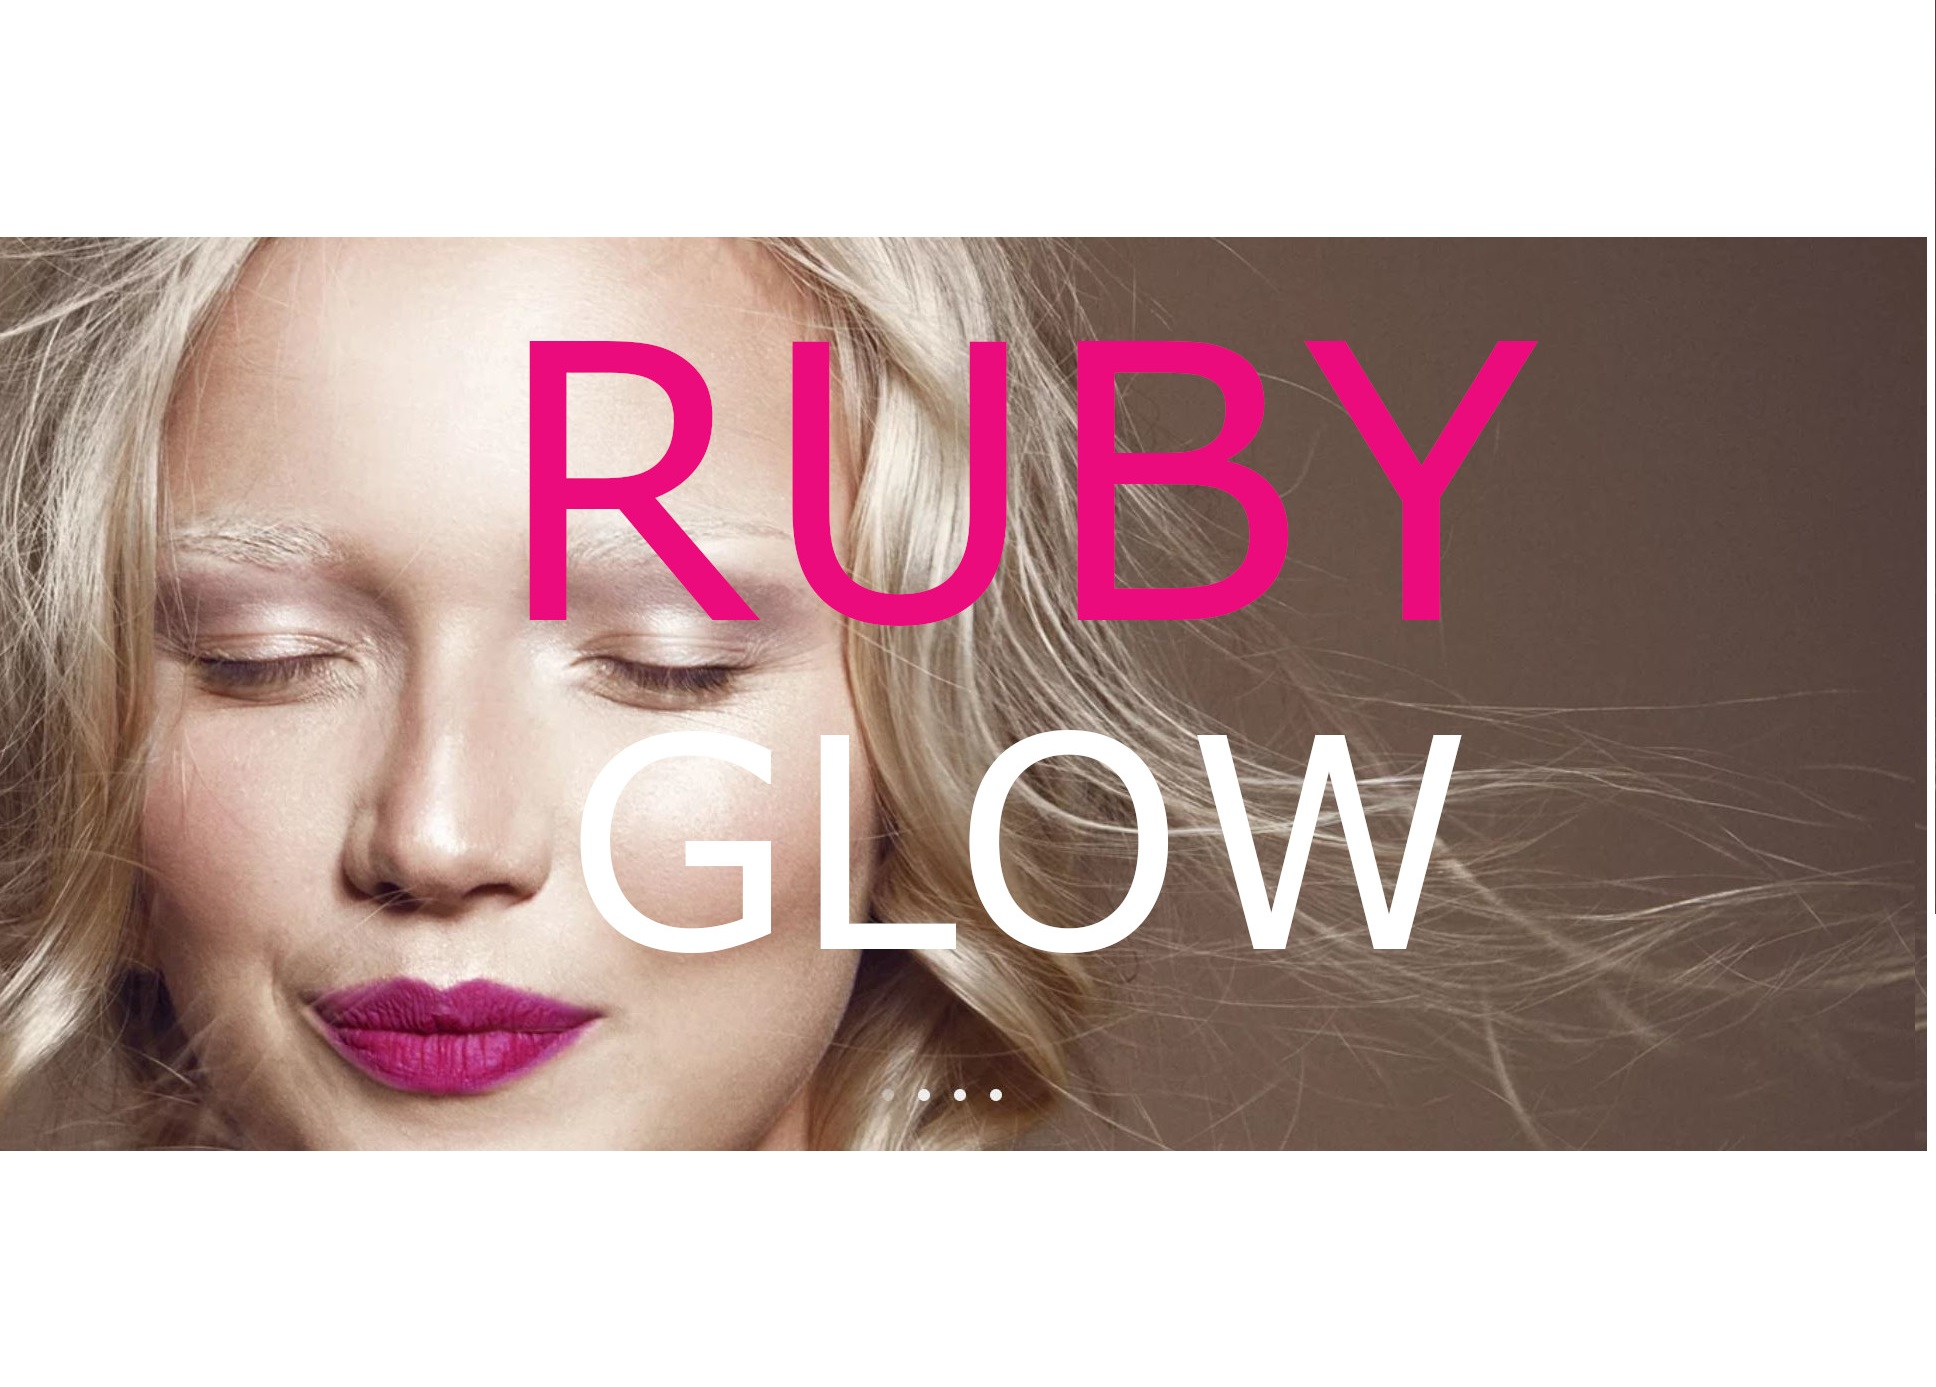 lady smiling with eyes closed and bright plum lips with Ruby Glow written over the front iin bold text.